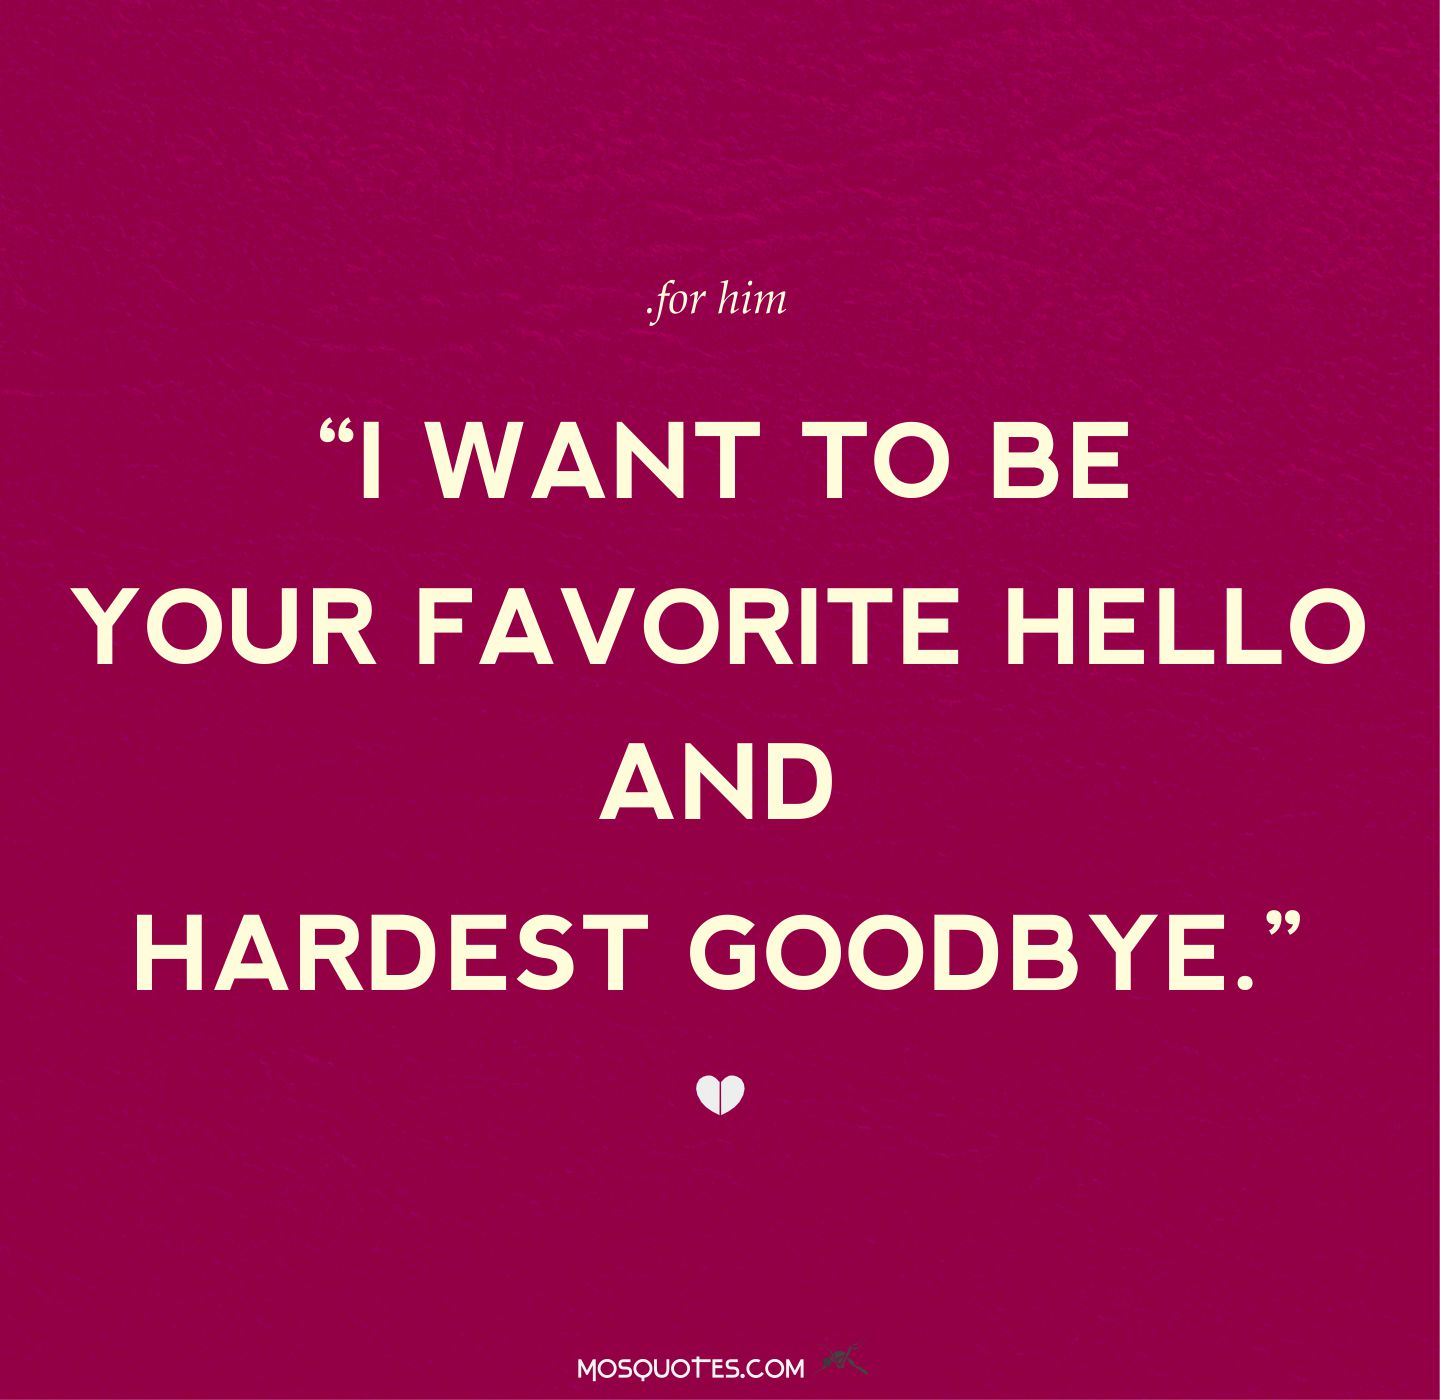 Quotes About Love: Hello Quotes For Him. QuotesGram